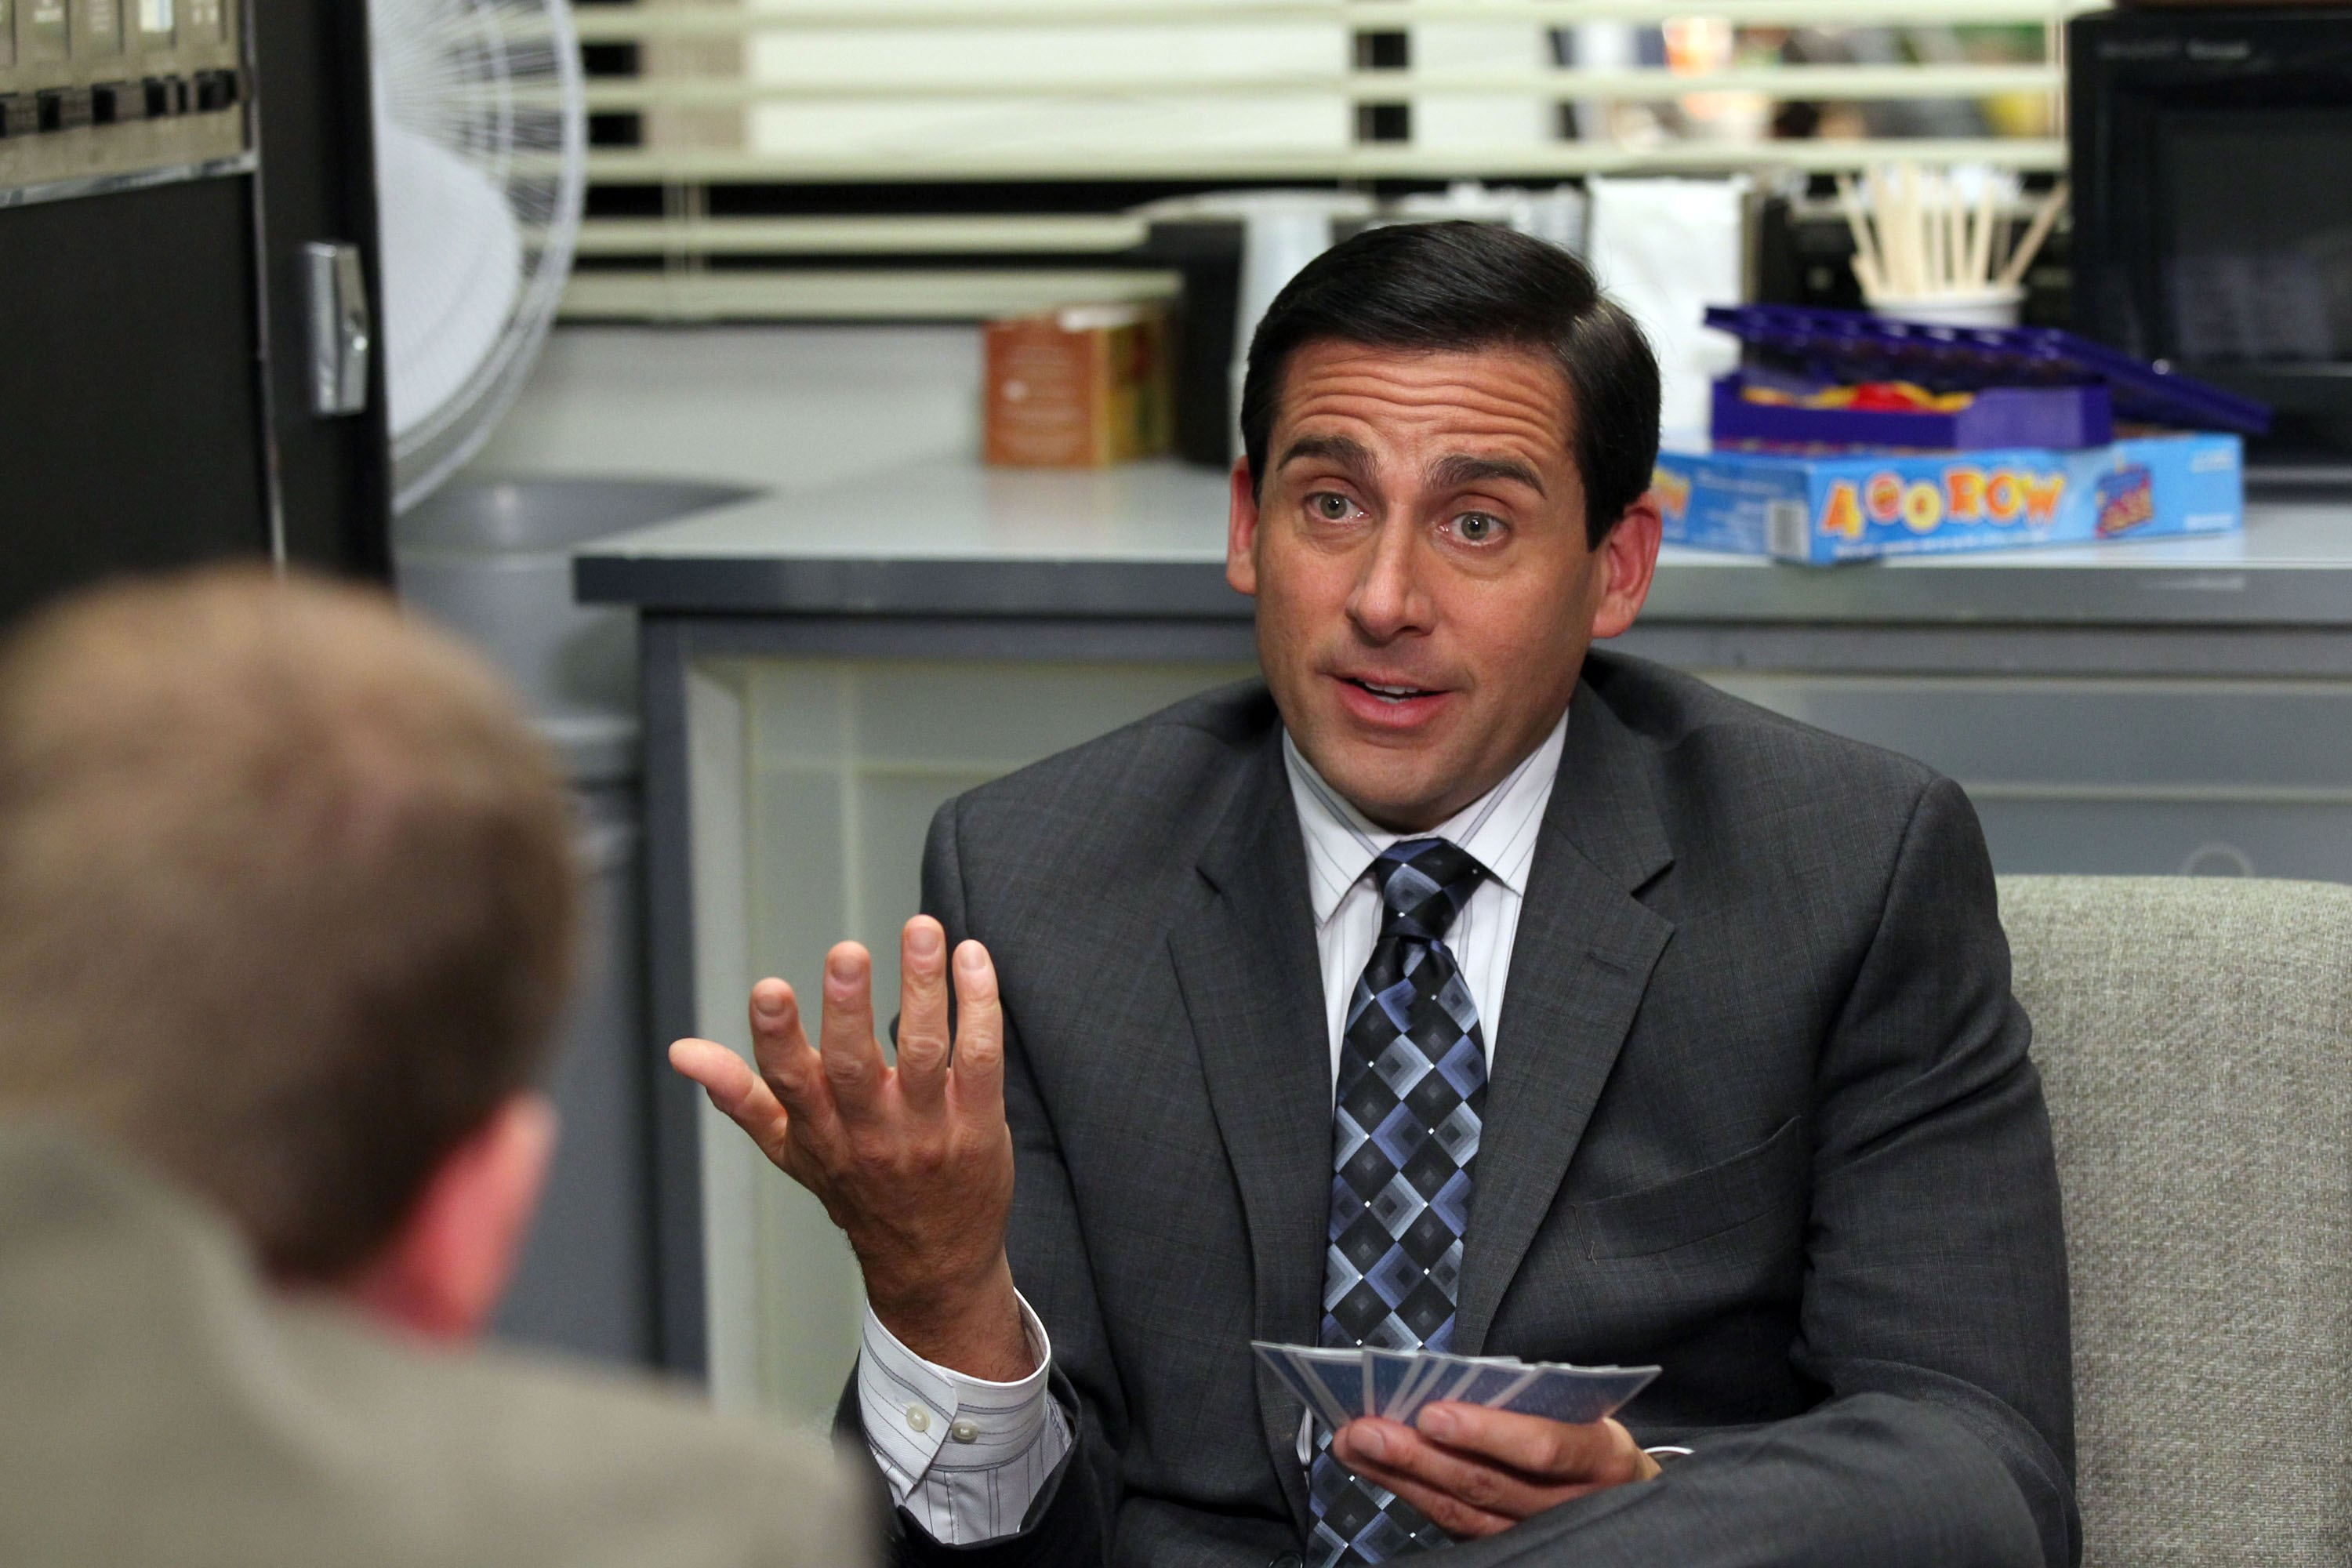 Why did Steve Carell leave The Office and what is his net worth?